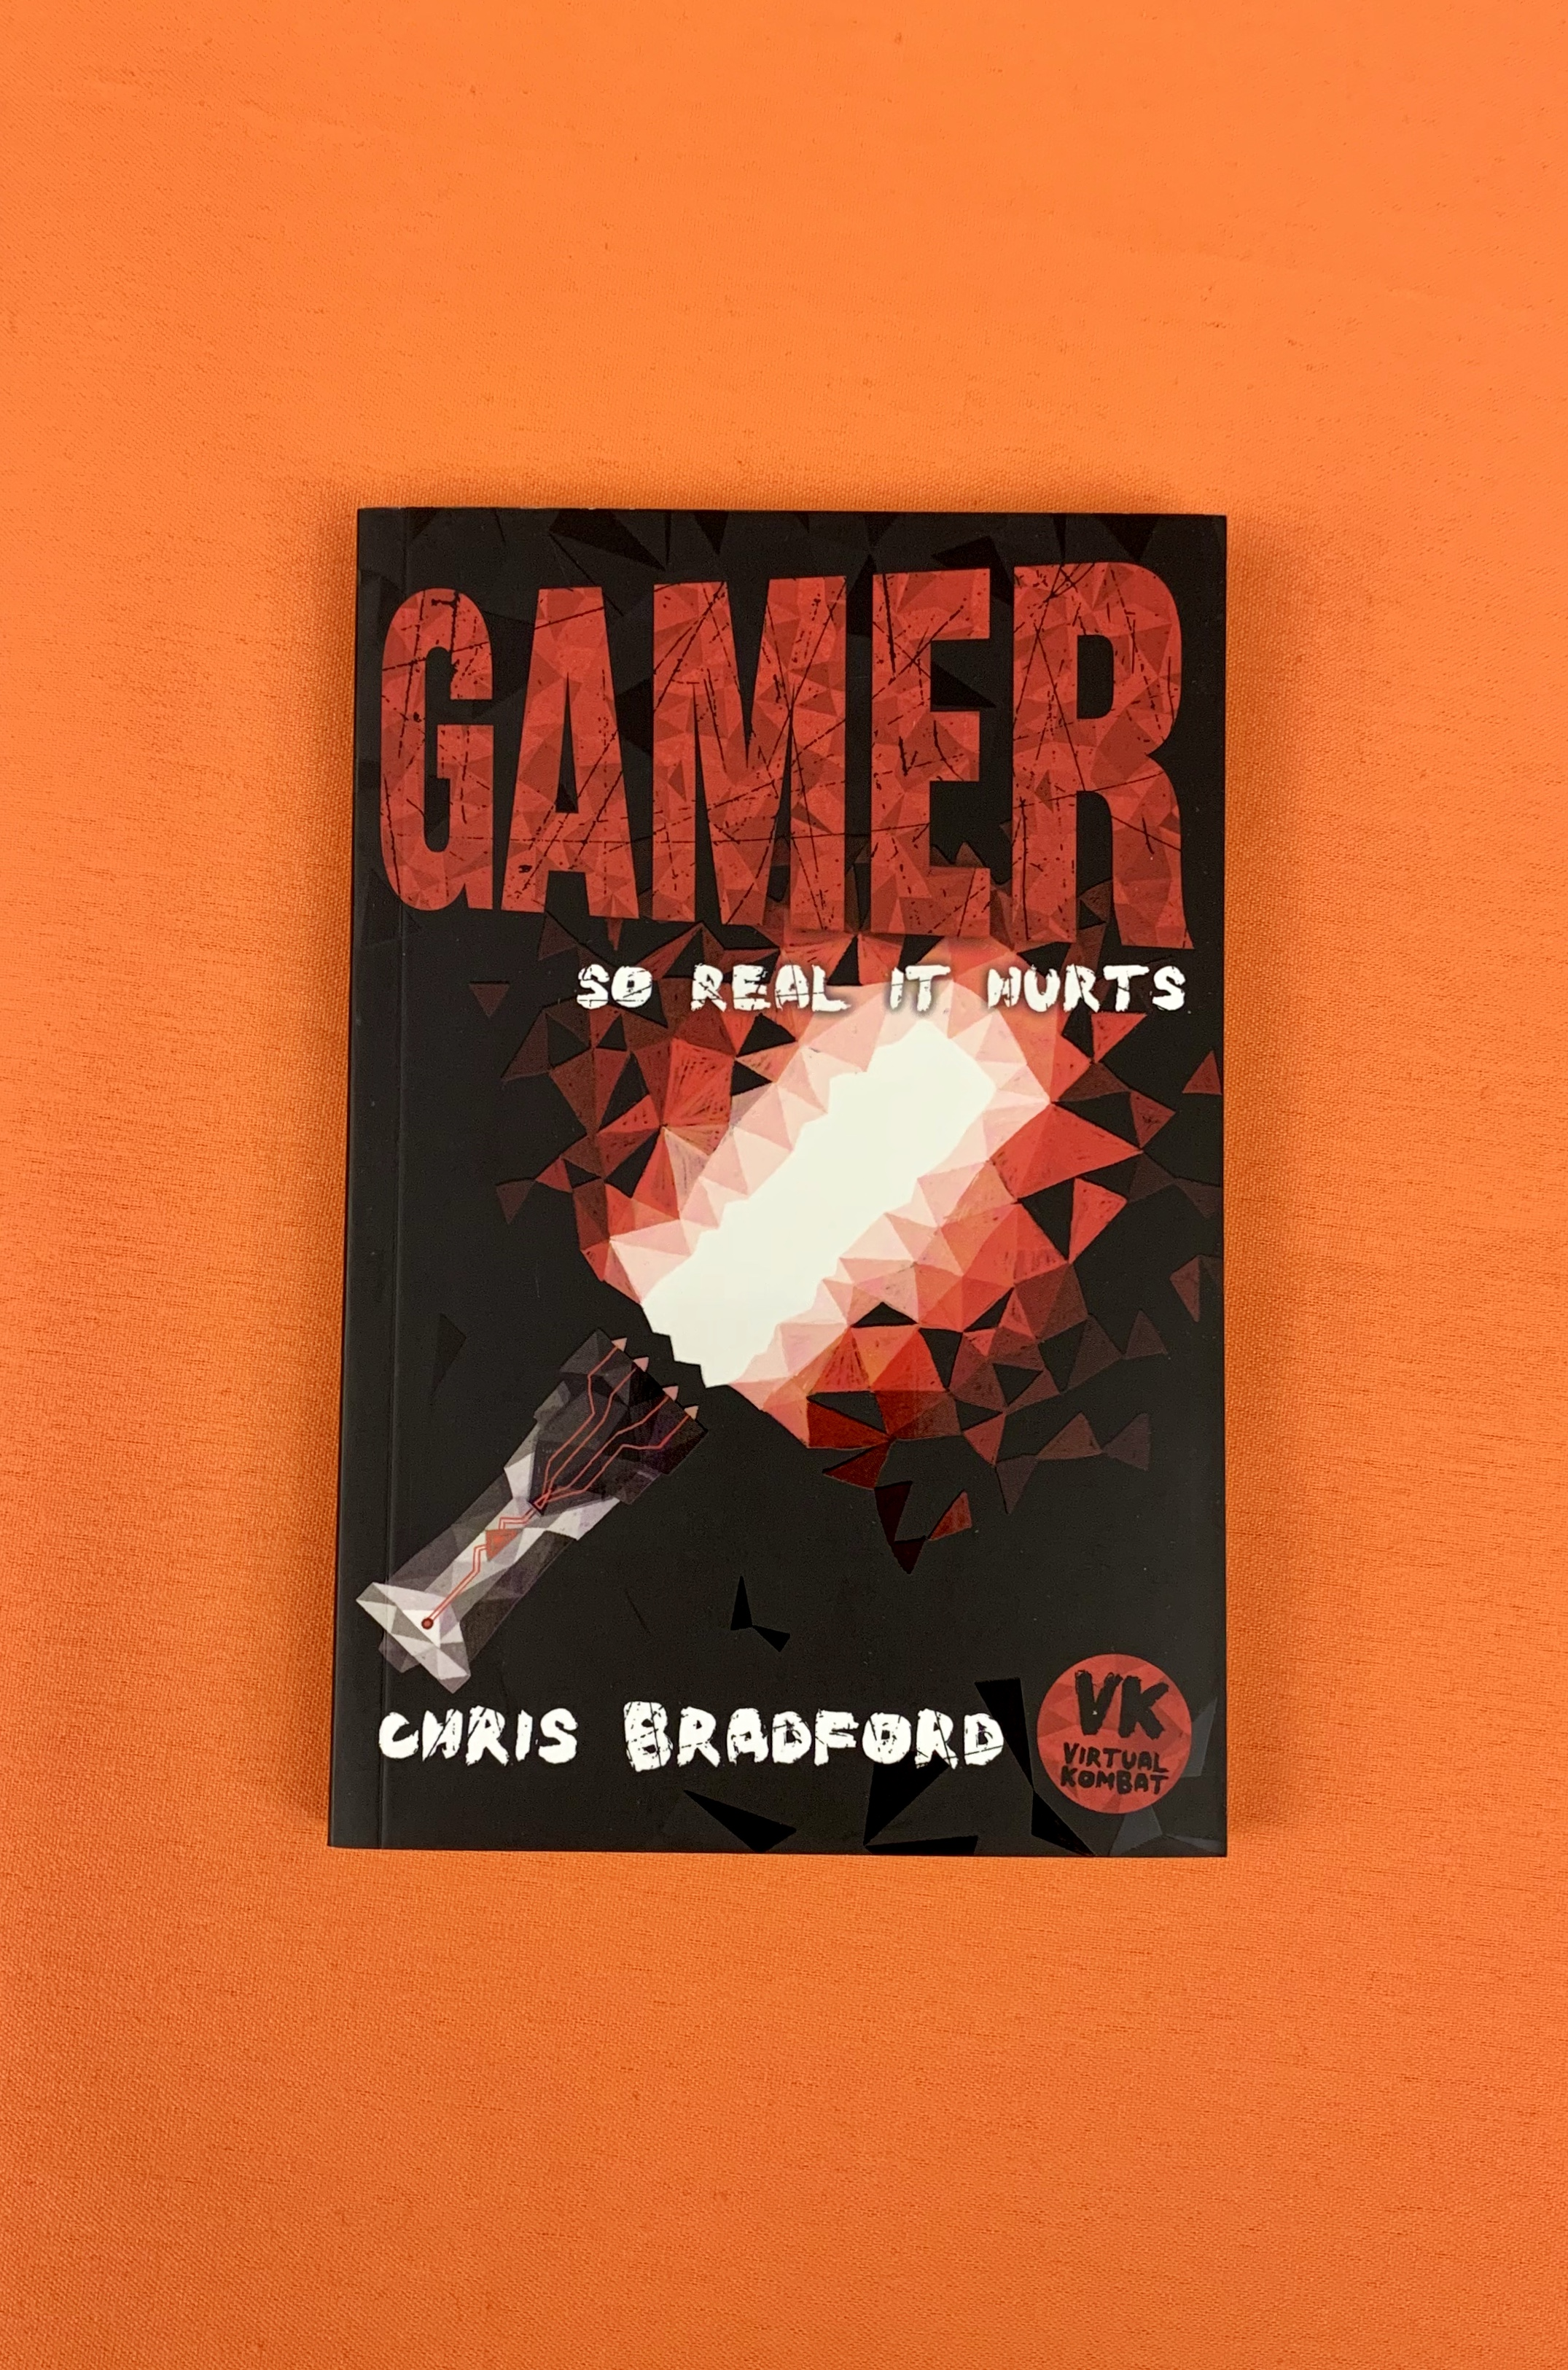 Photograph of the Gamer